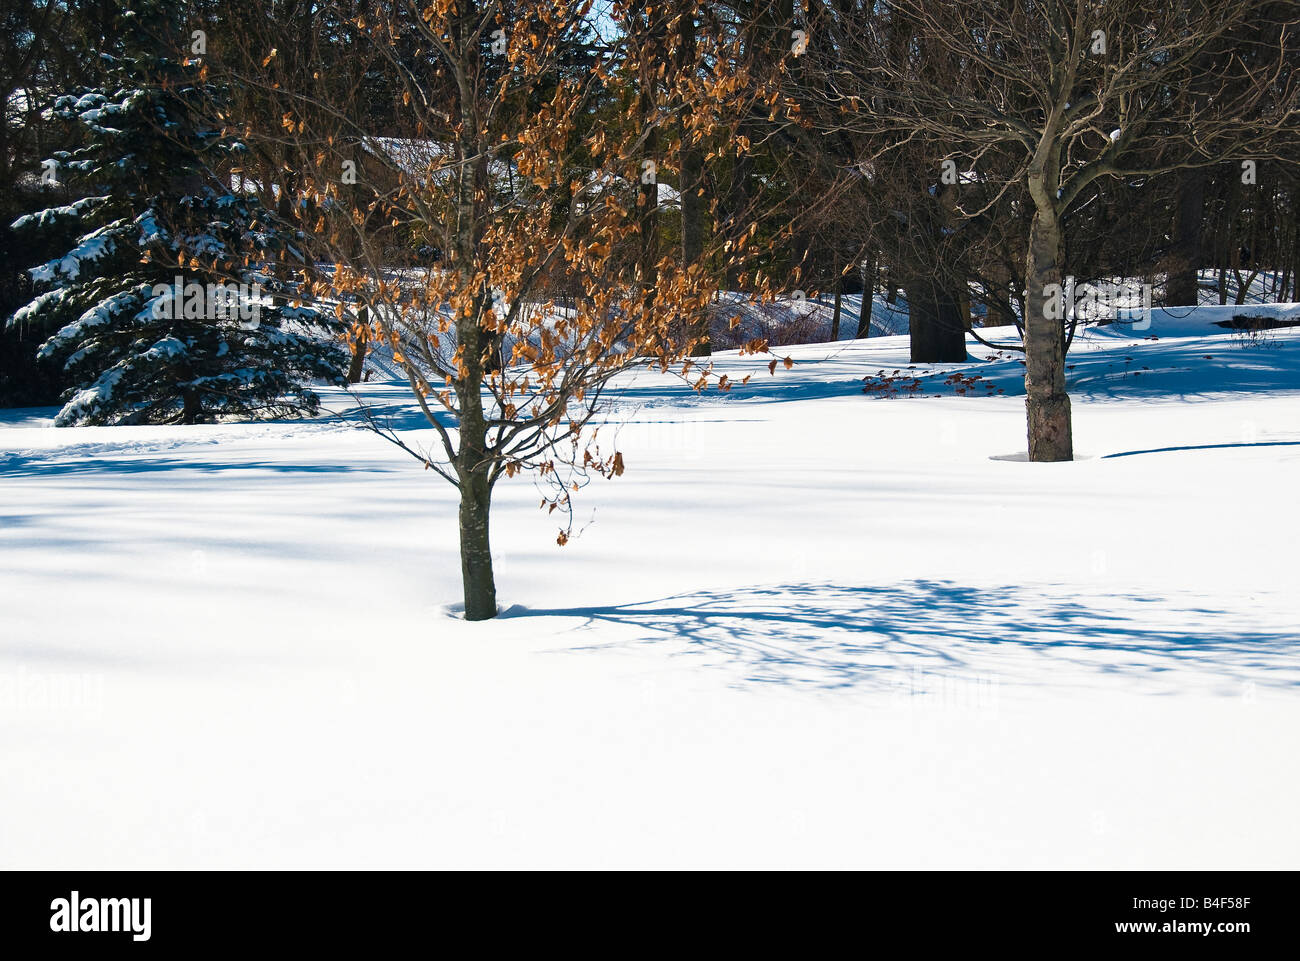 A canadian winter scene at Gairloch Gardens in Oakville, Ontario,Canada - Stock Image